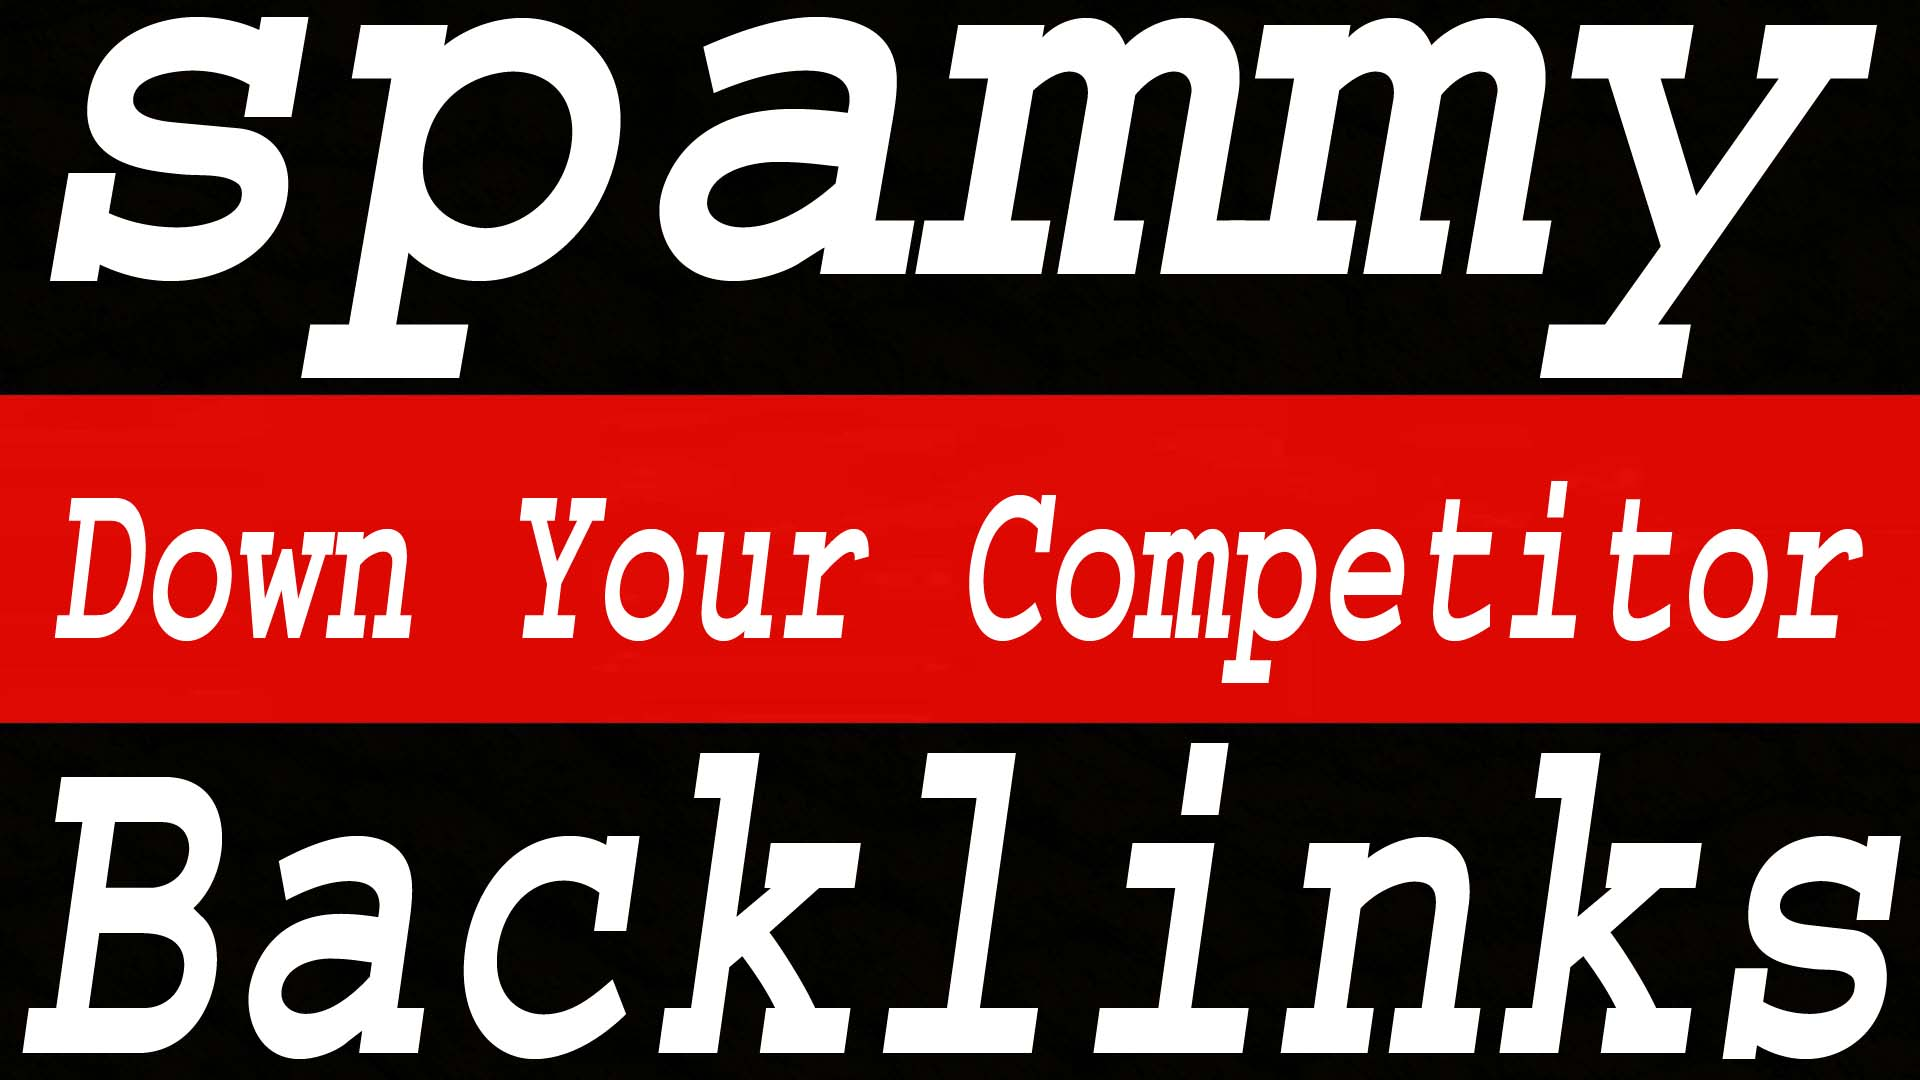 2 Millions Spammy backlink to Down your competitor on Google Page Guaranteed